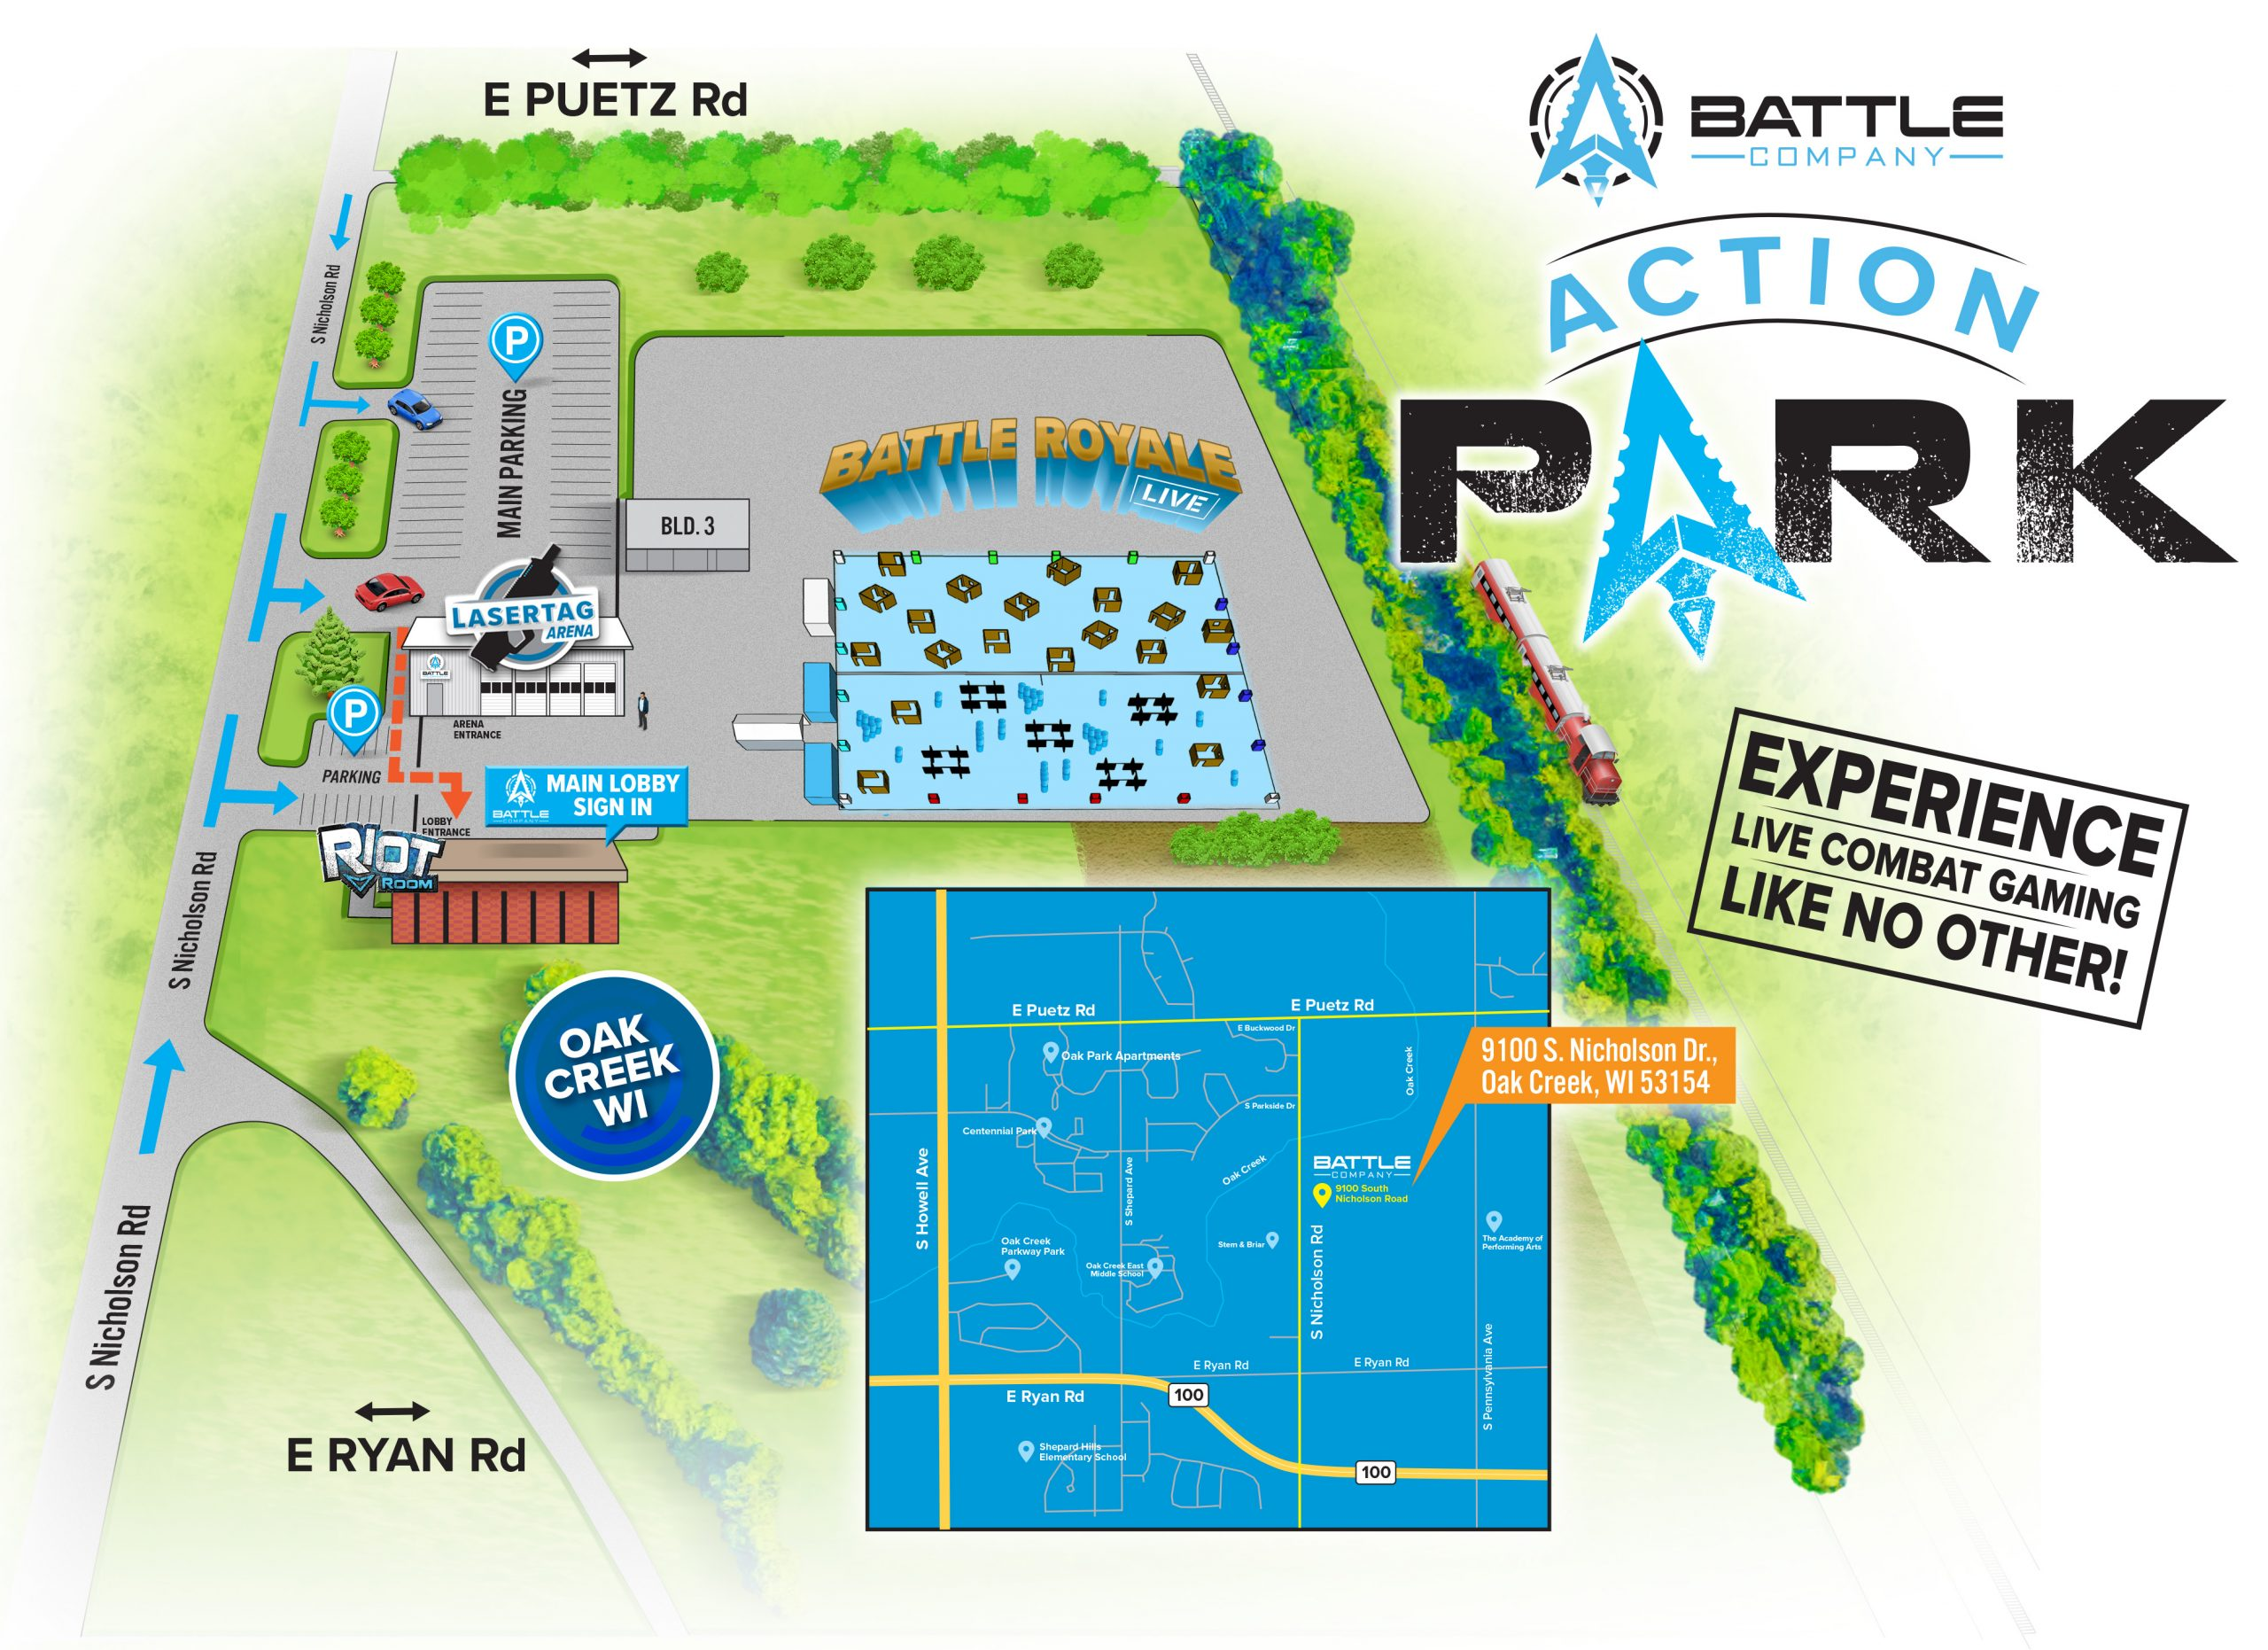 battle-company-action-park-map